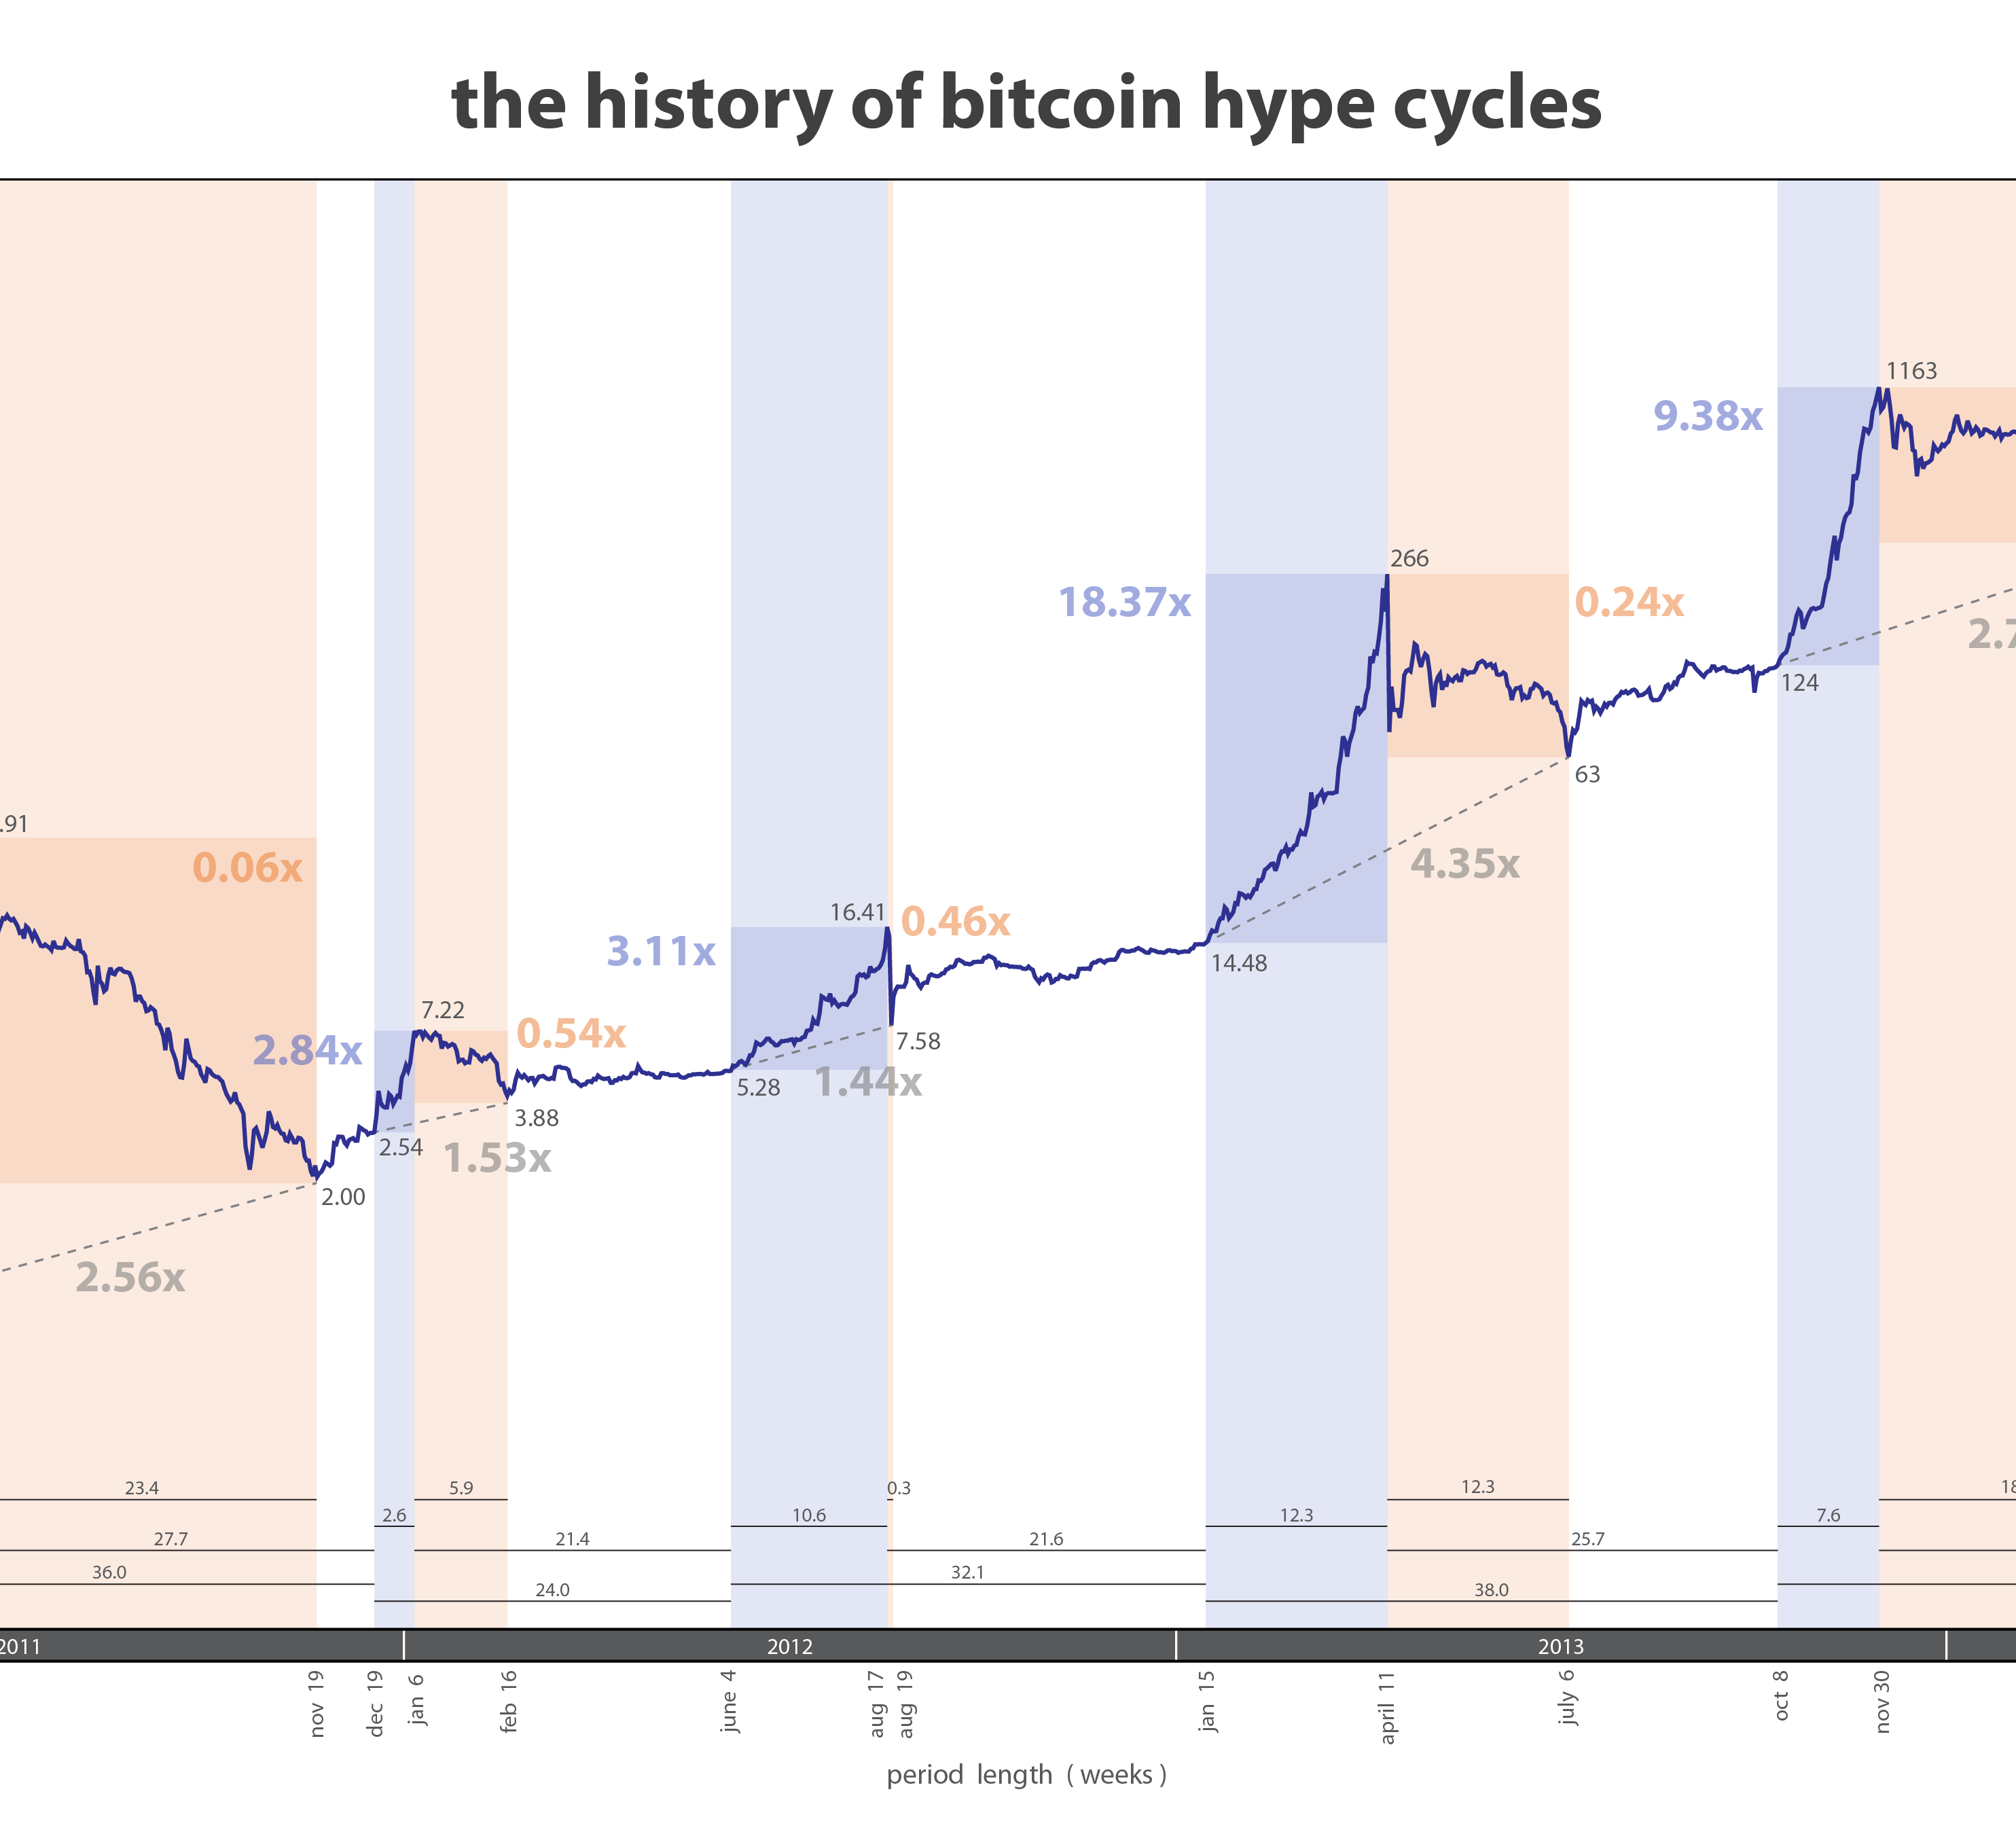 The History of Bitcoin Hype Cycles